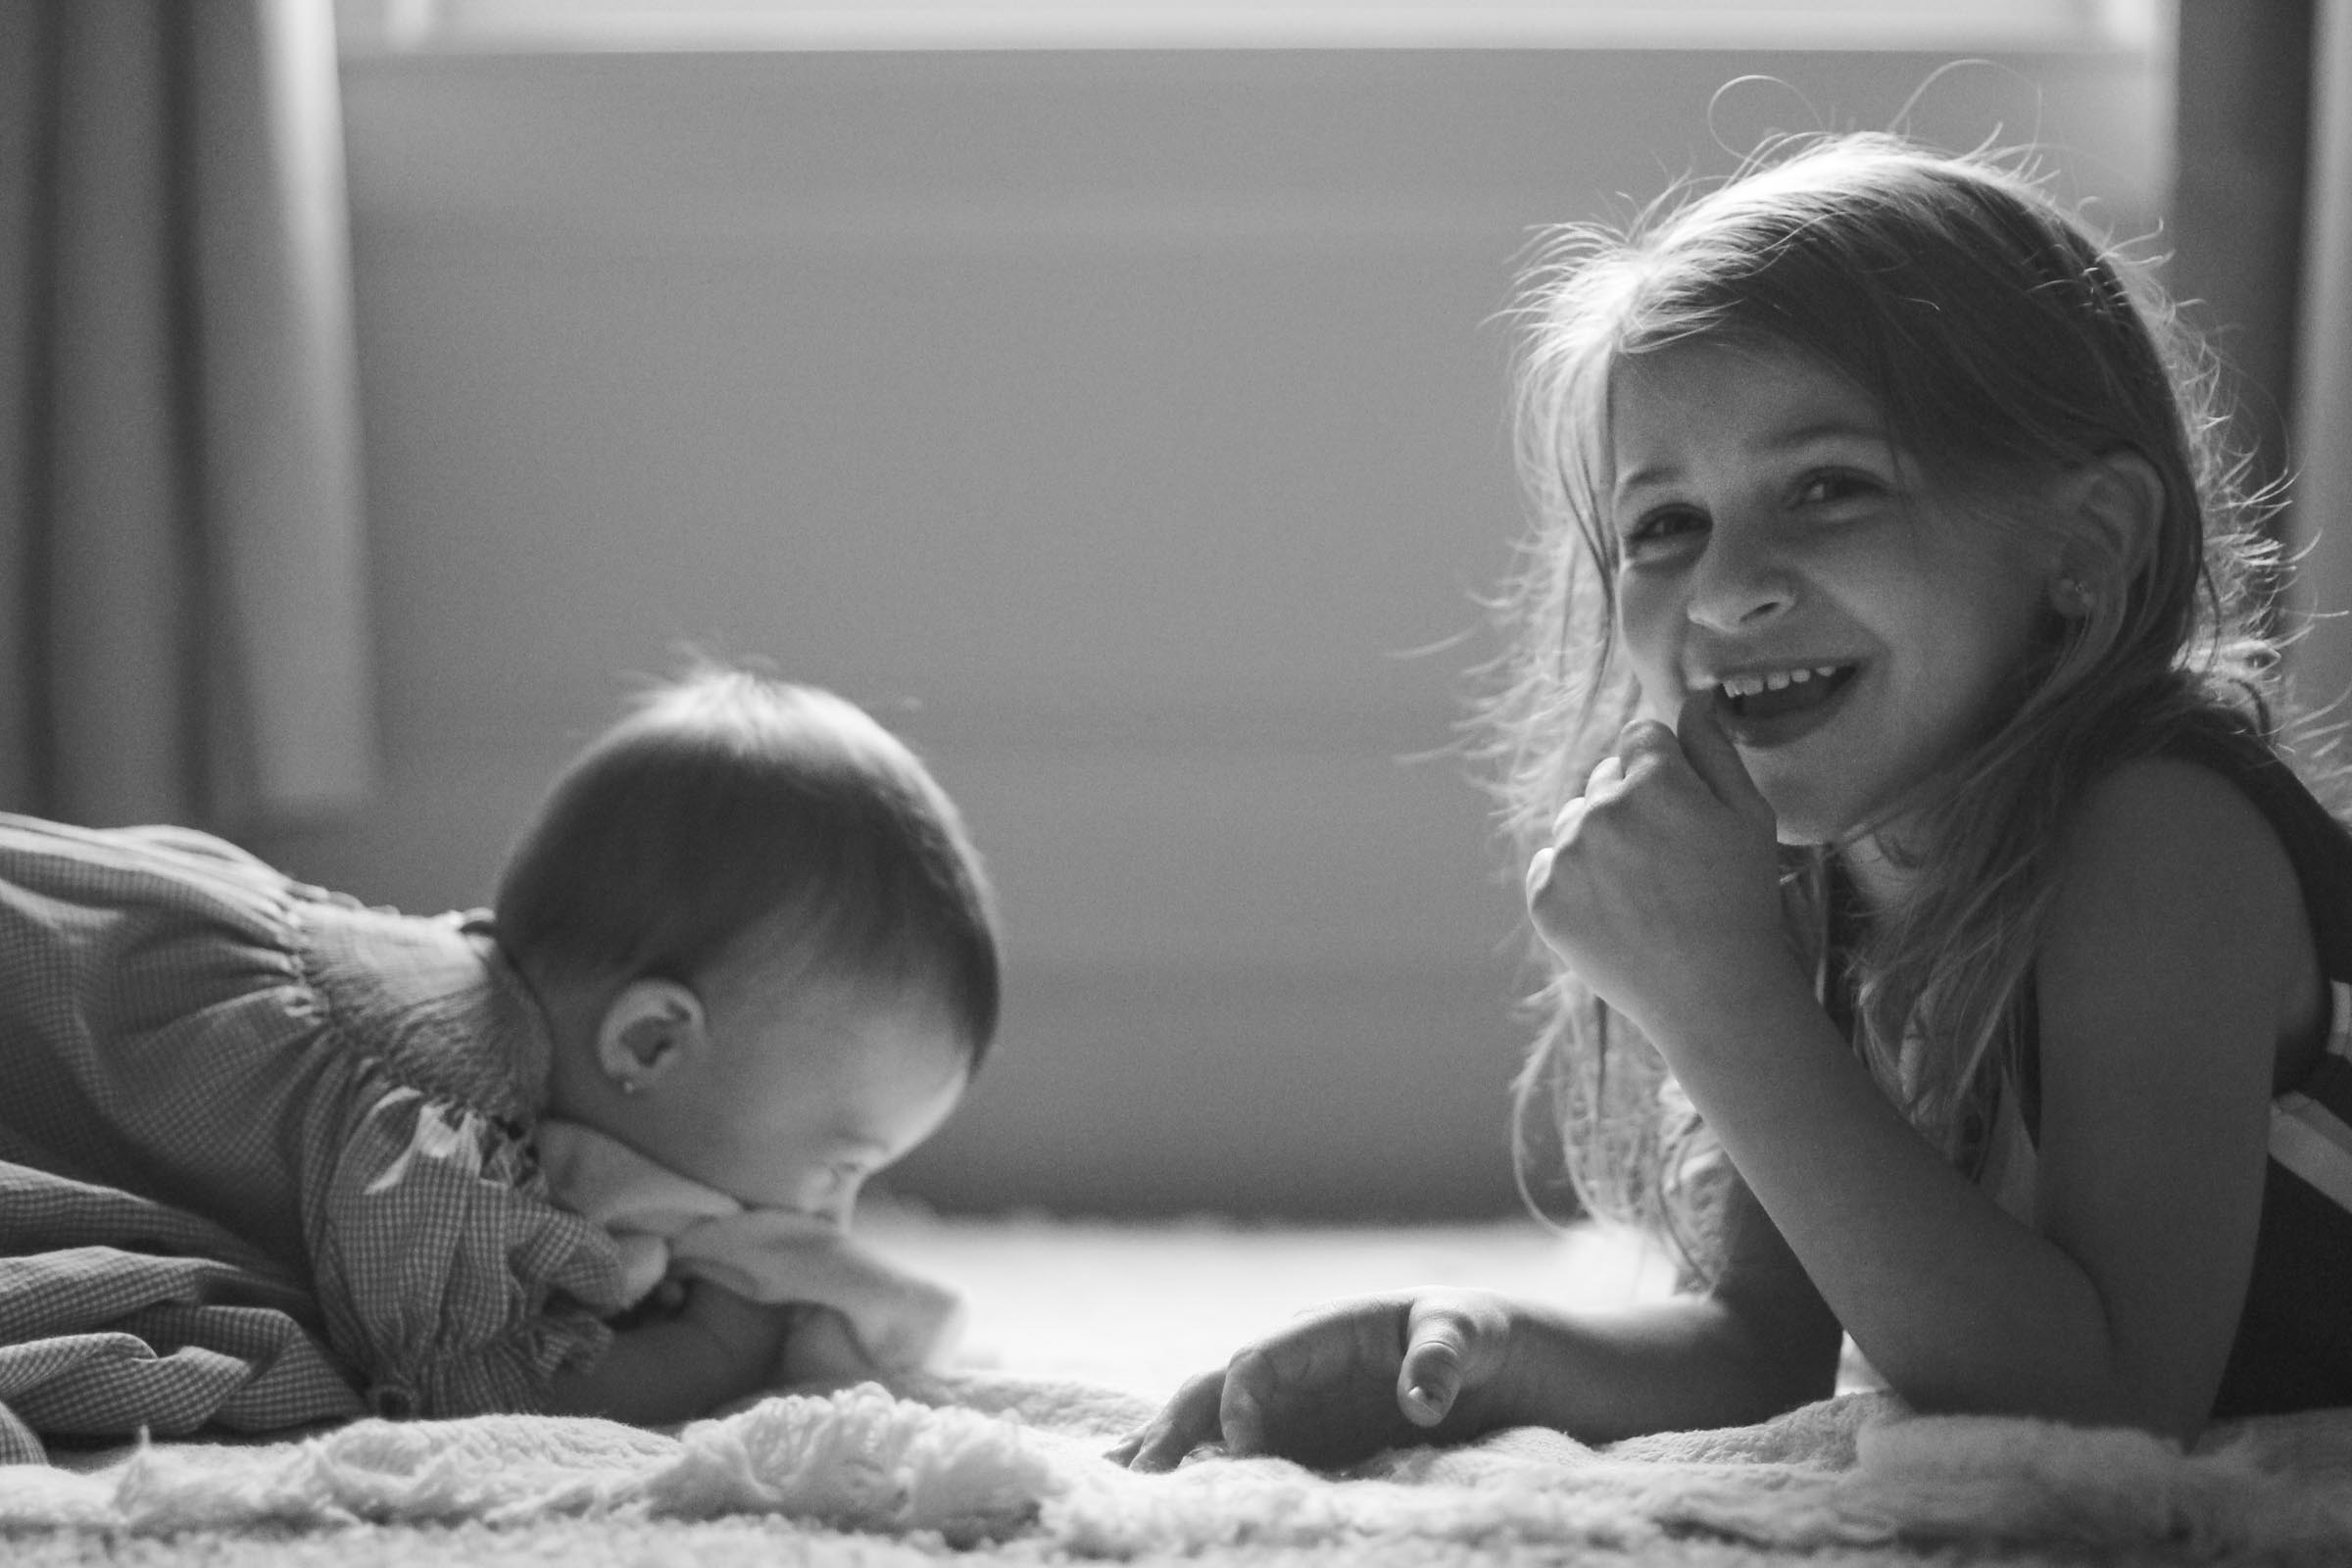 ashley-landry-photography-raymond-09-2016-21-of-41